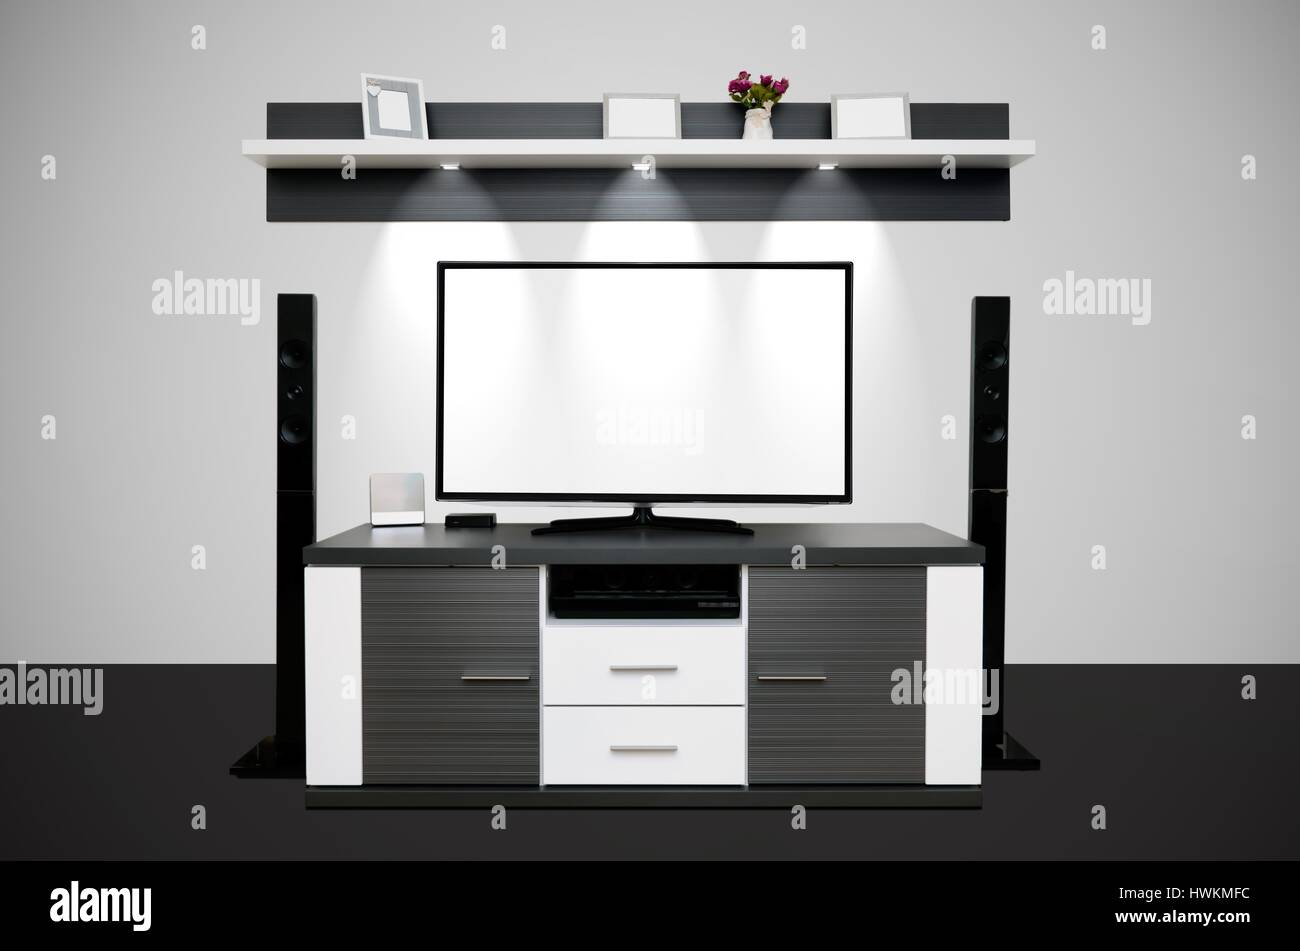 Modern TV room with illuminated LED lamps in shelf - Stock Image